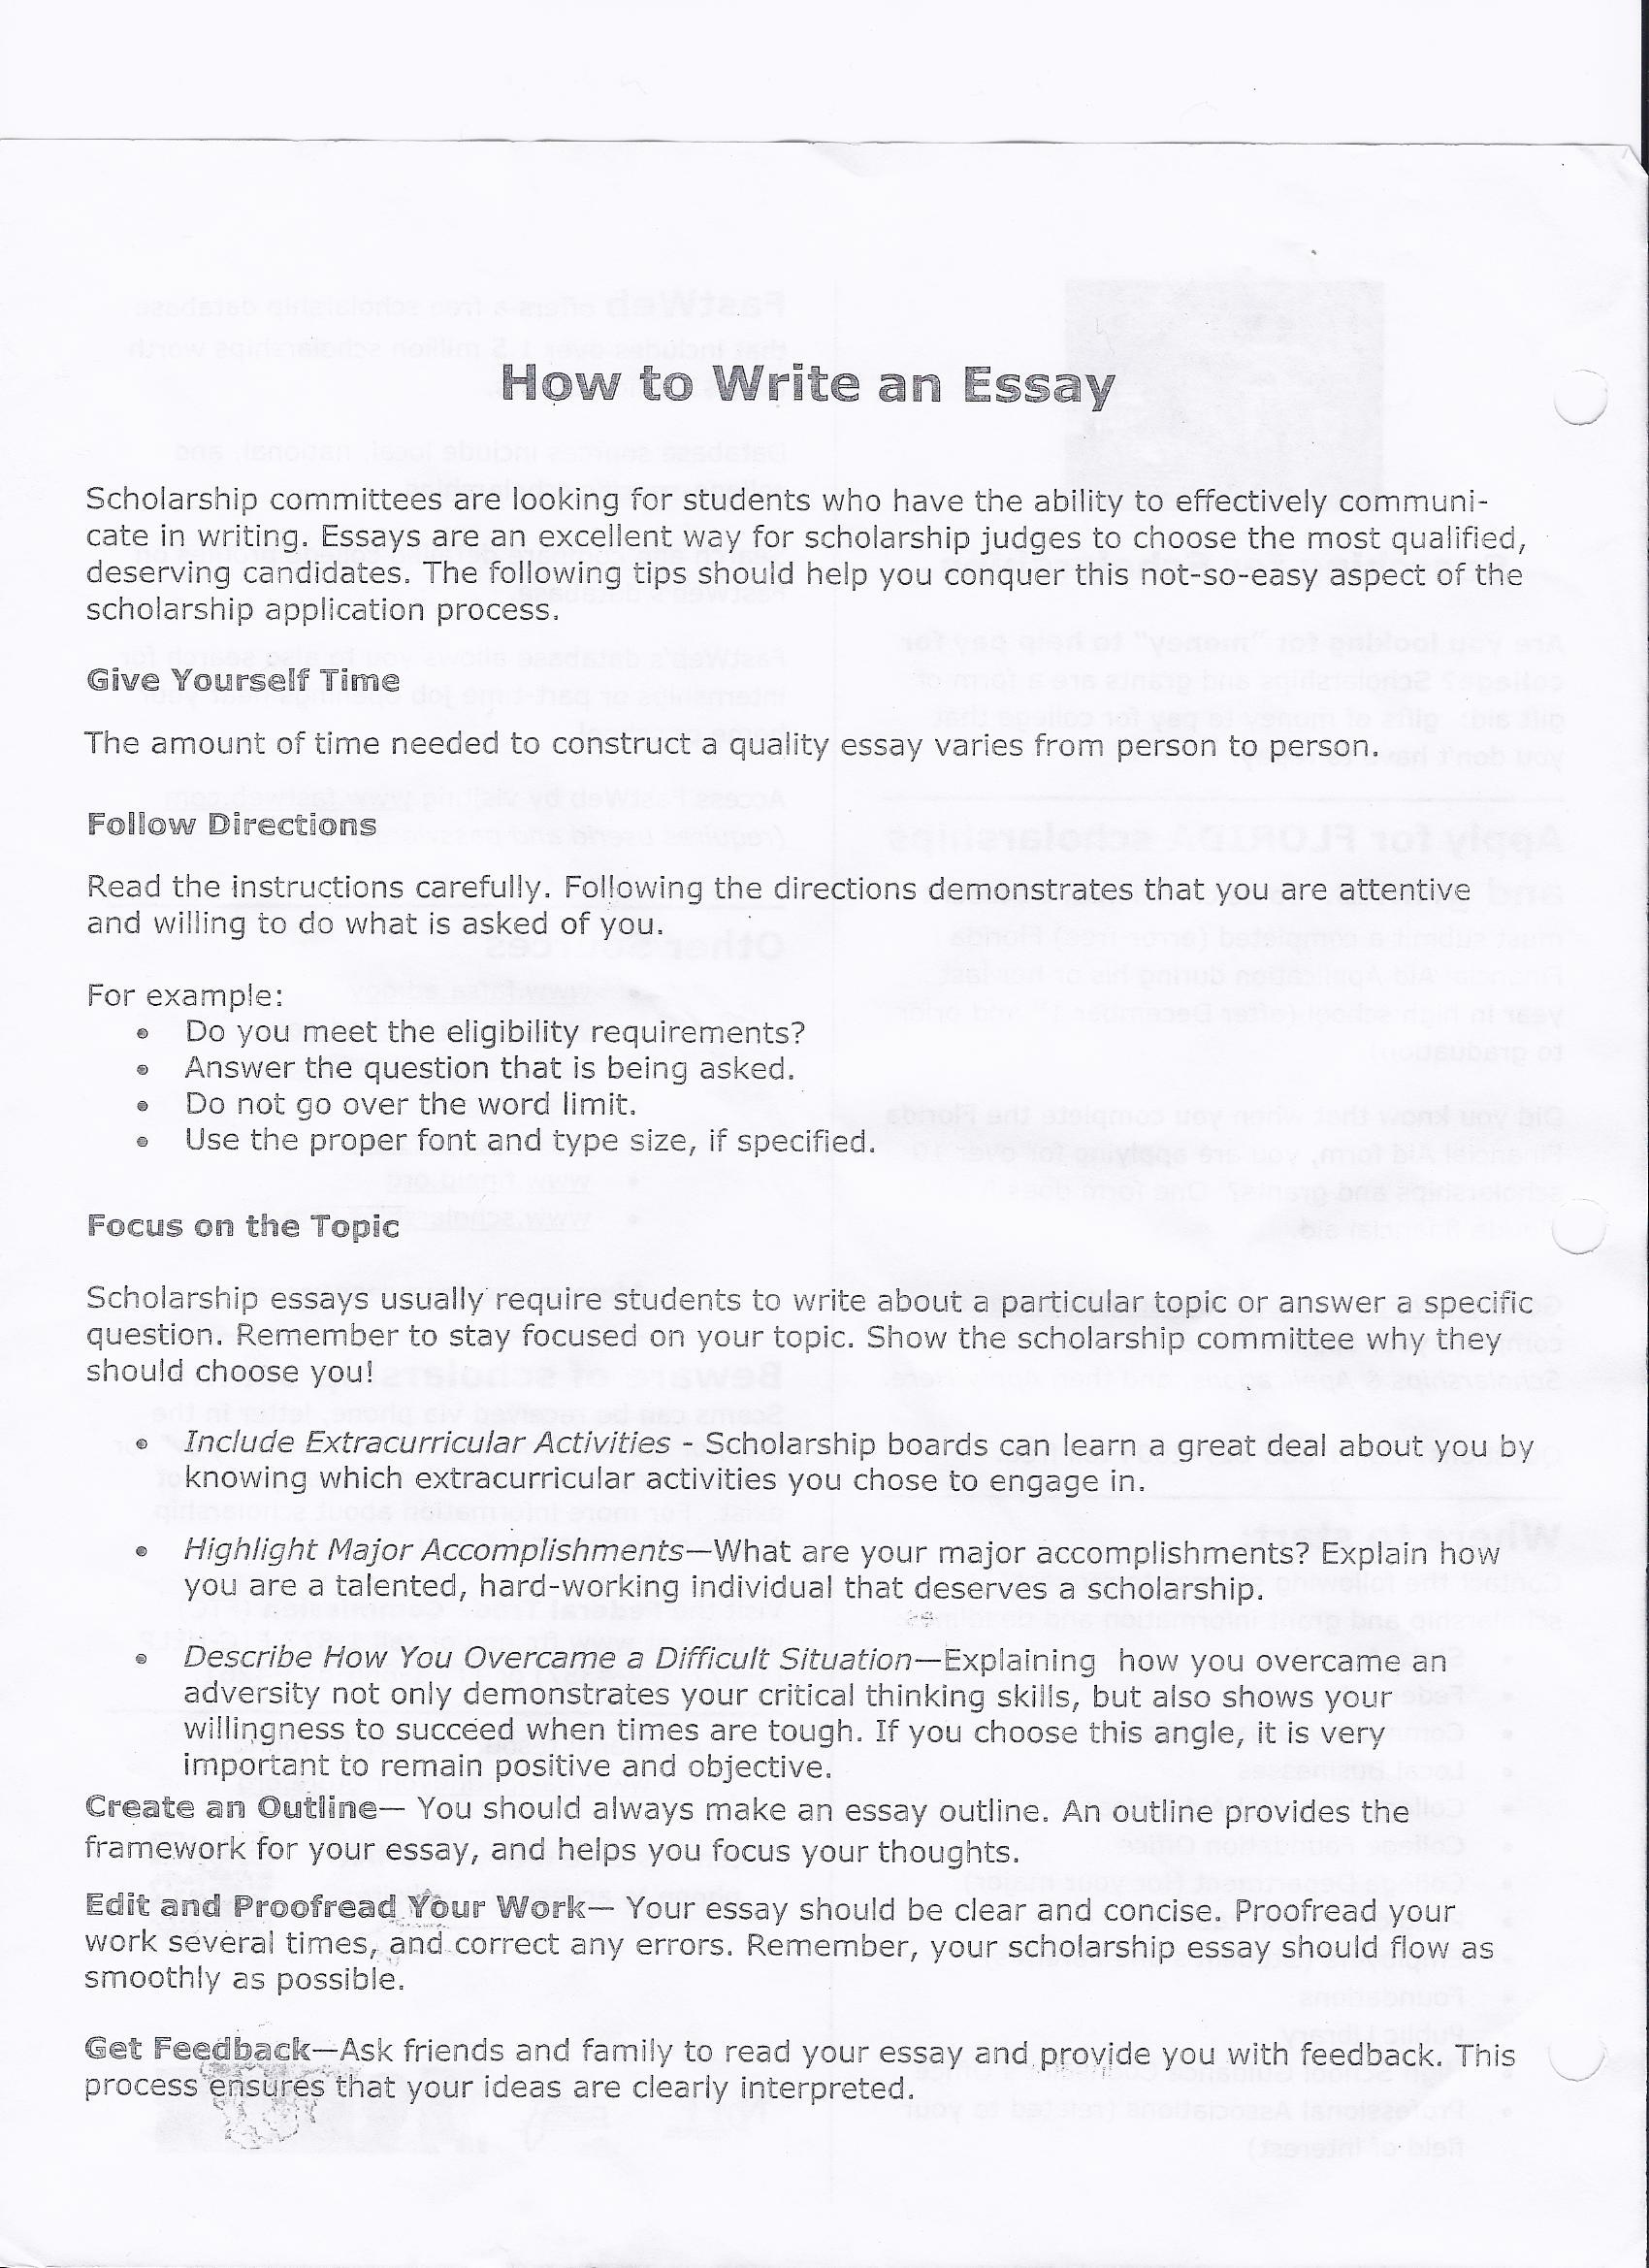 ww essay reframing first world war poetry the british library  collage essay collage essay collage essay jonathon lay personal collage essaycollage essay buy key stage geography